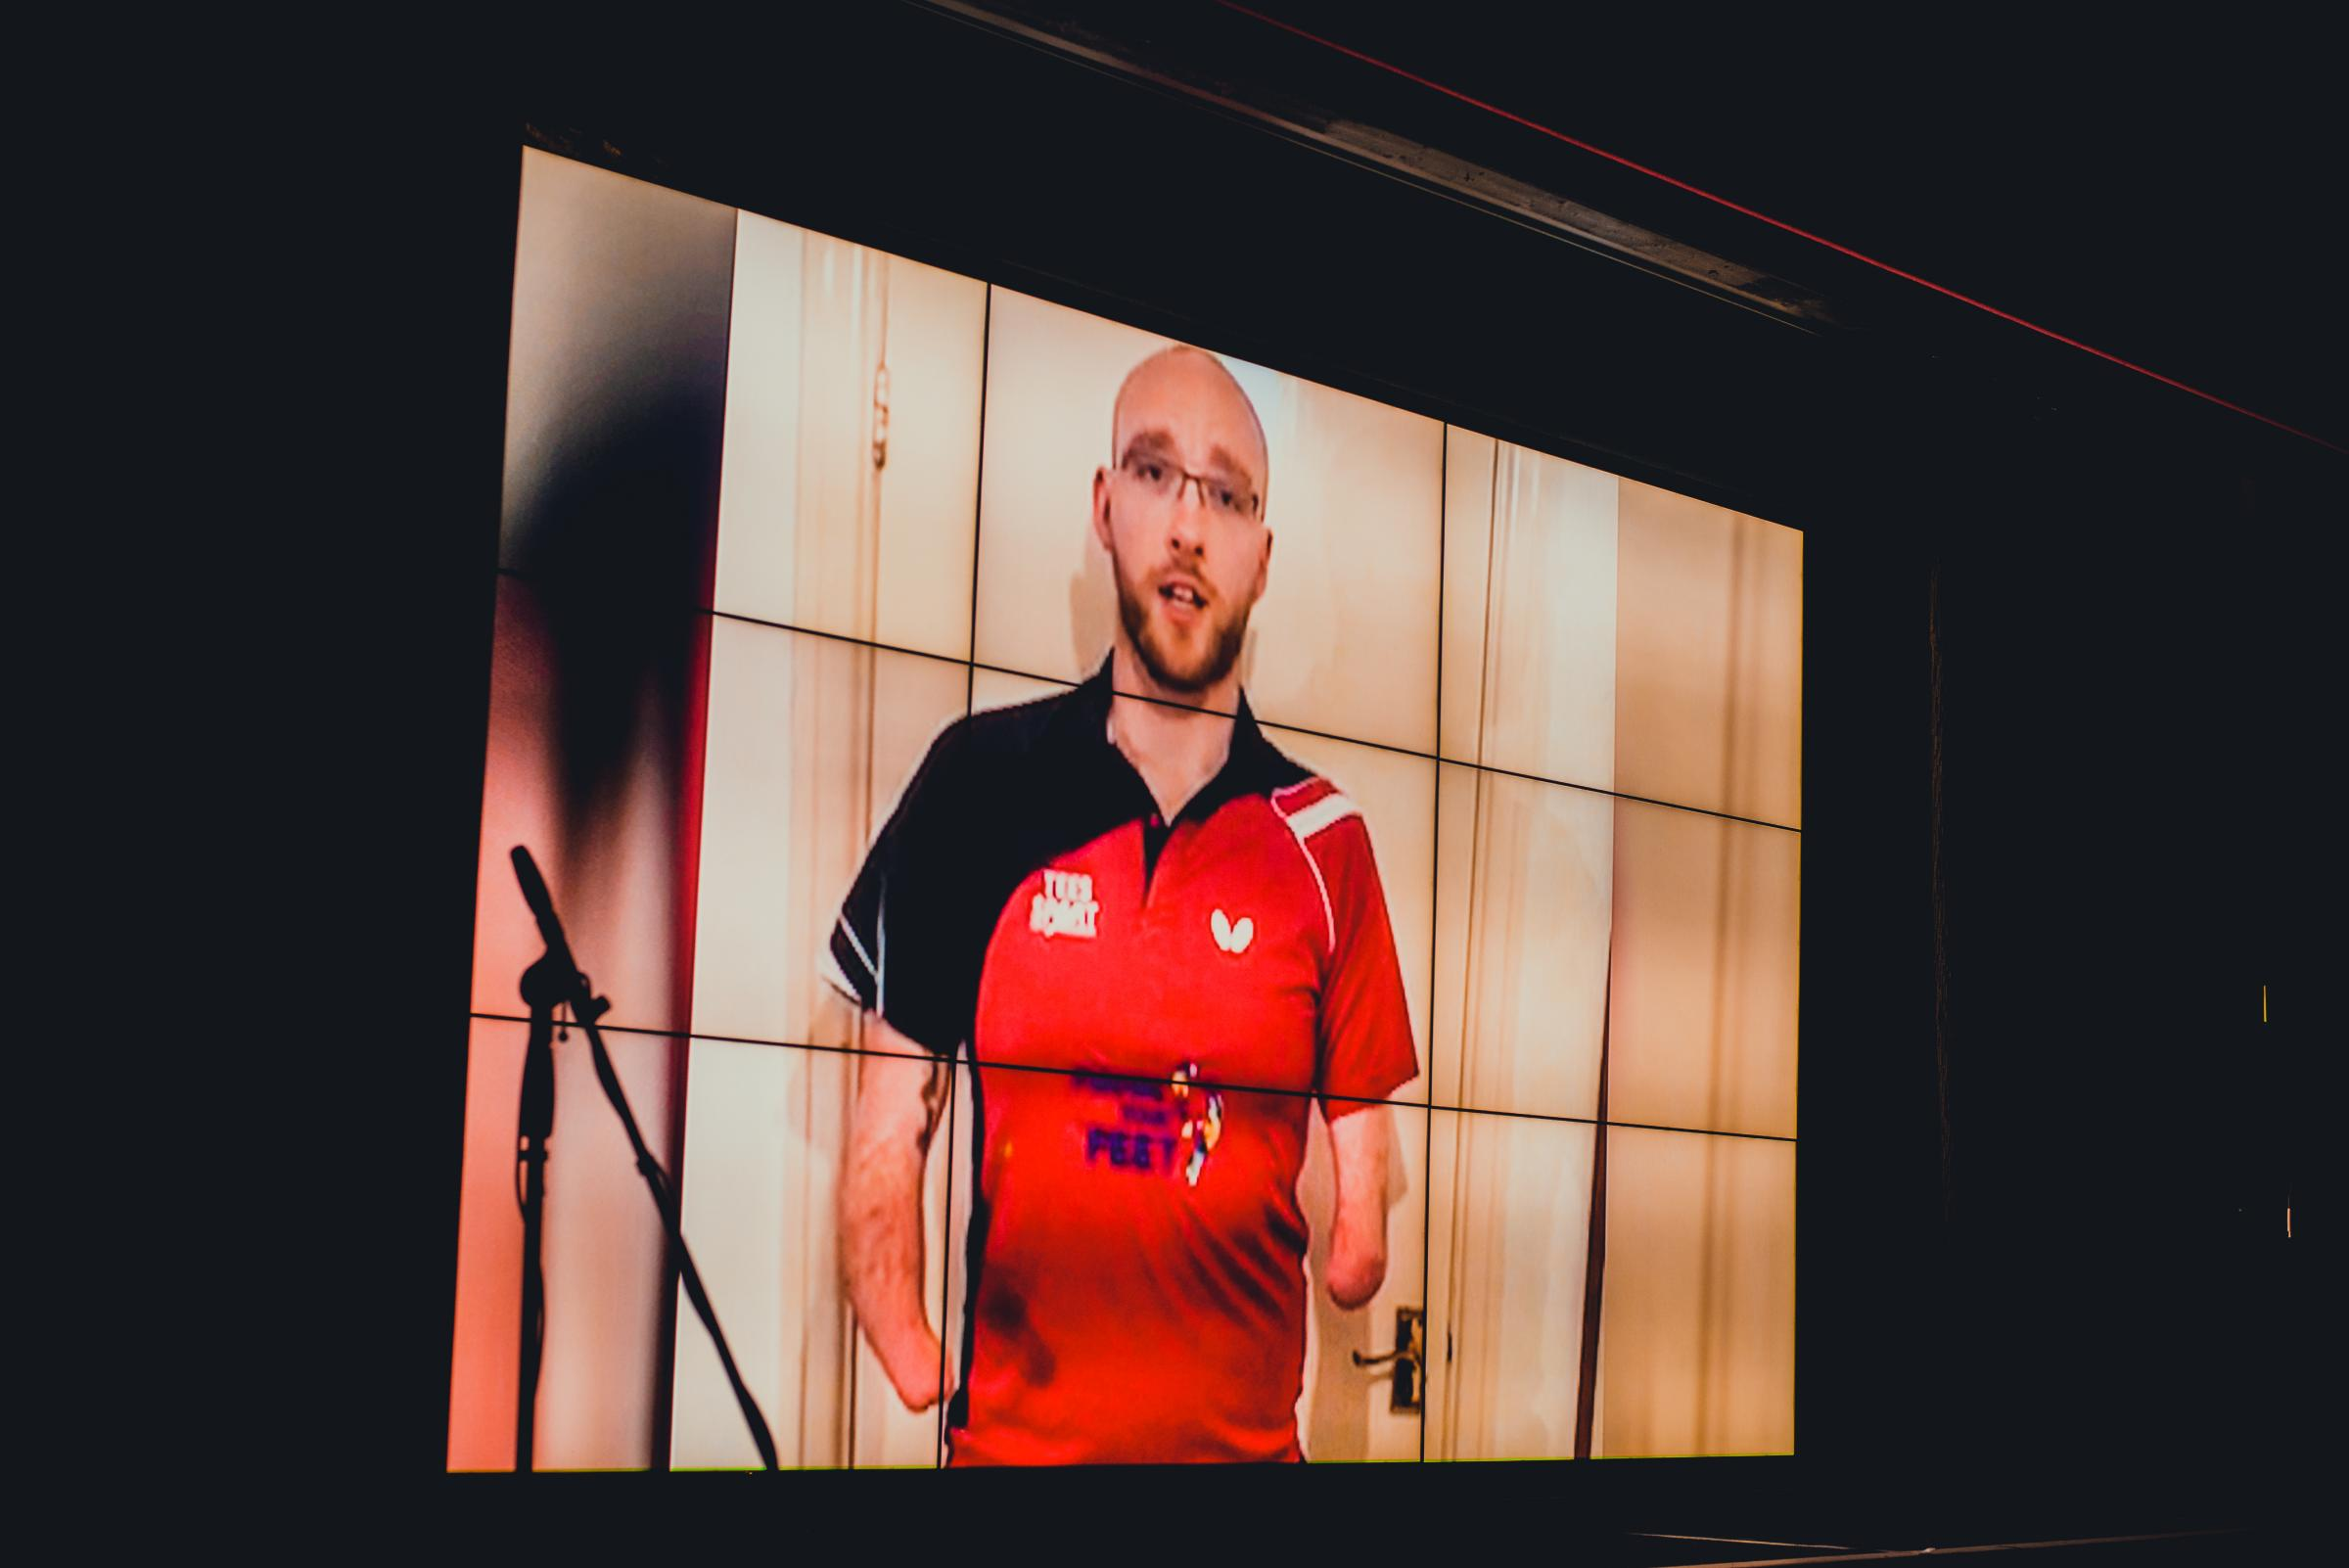 Martin Perry was shown on the big screen in Edinburgh